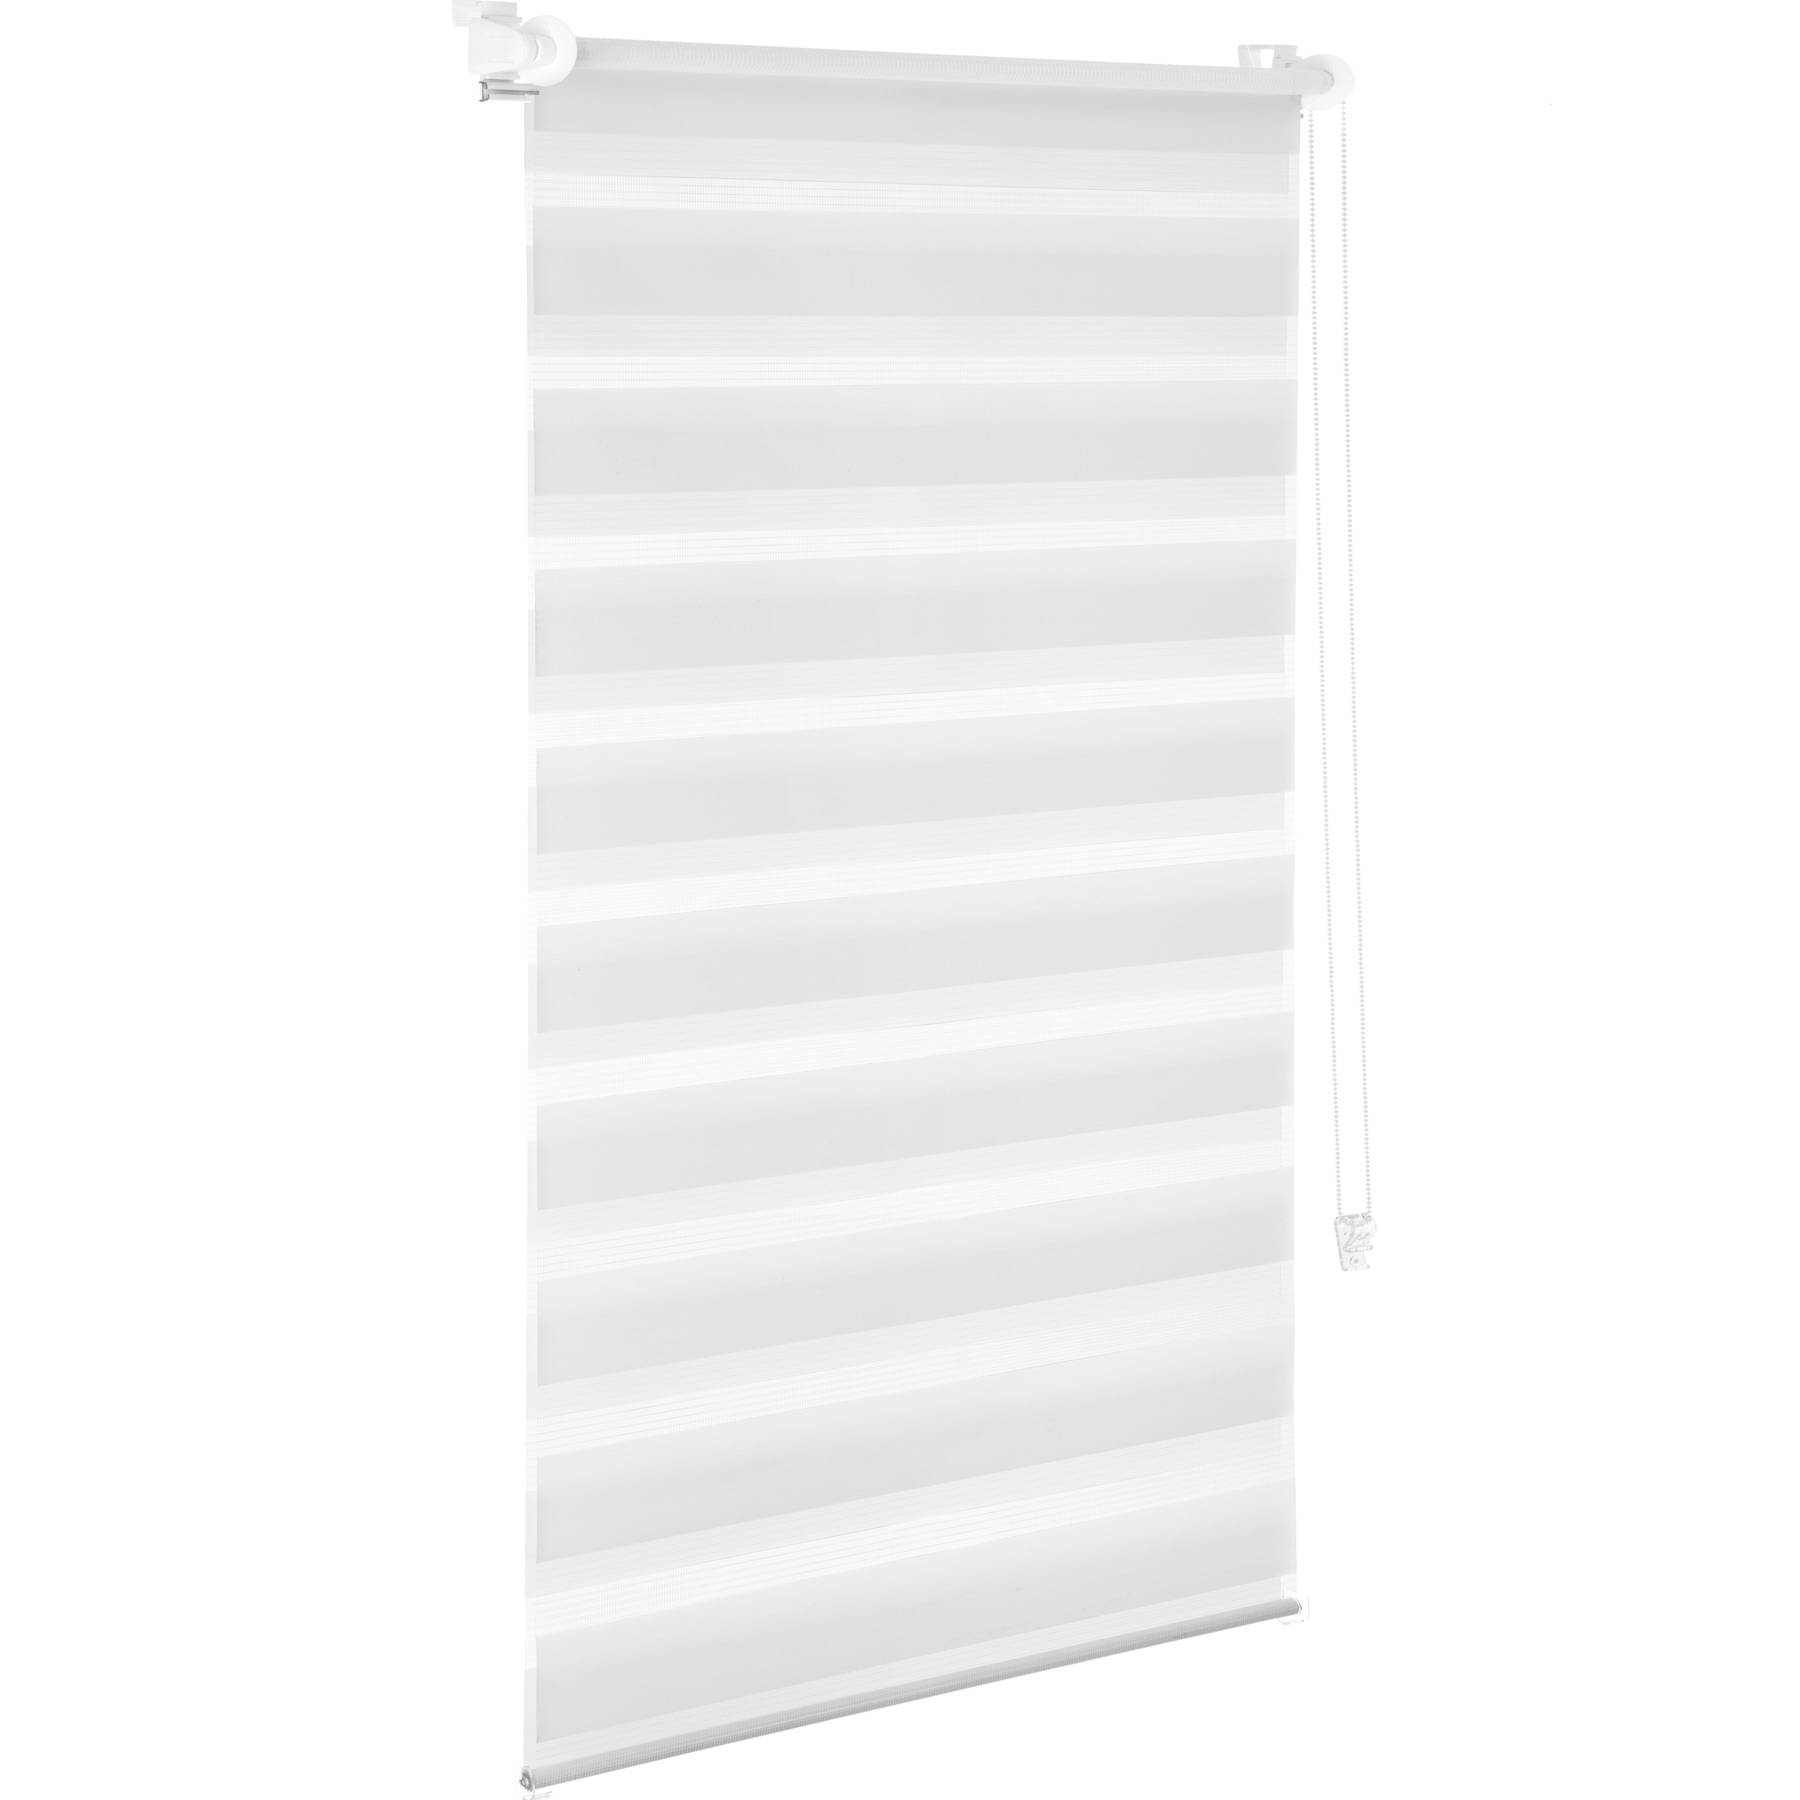 tectake Double roller blinds made of polyester - 63 x 120 cm